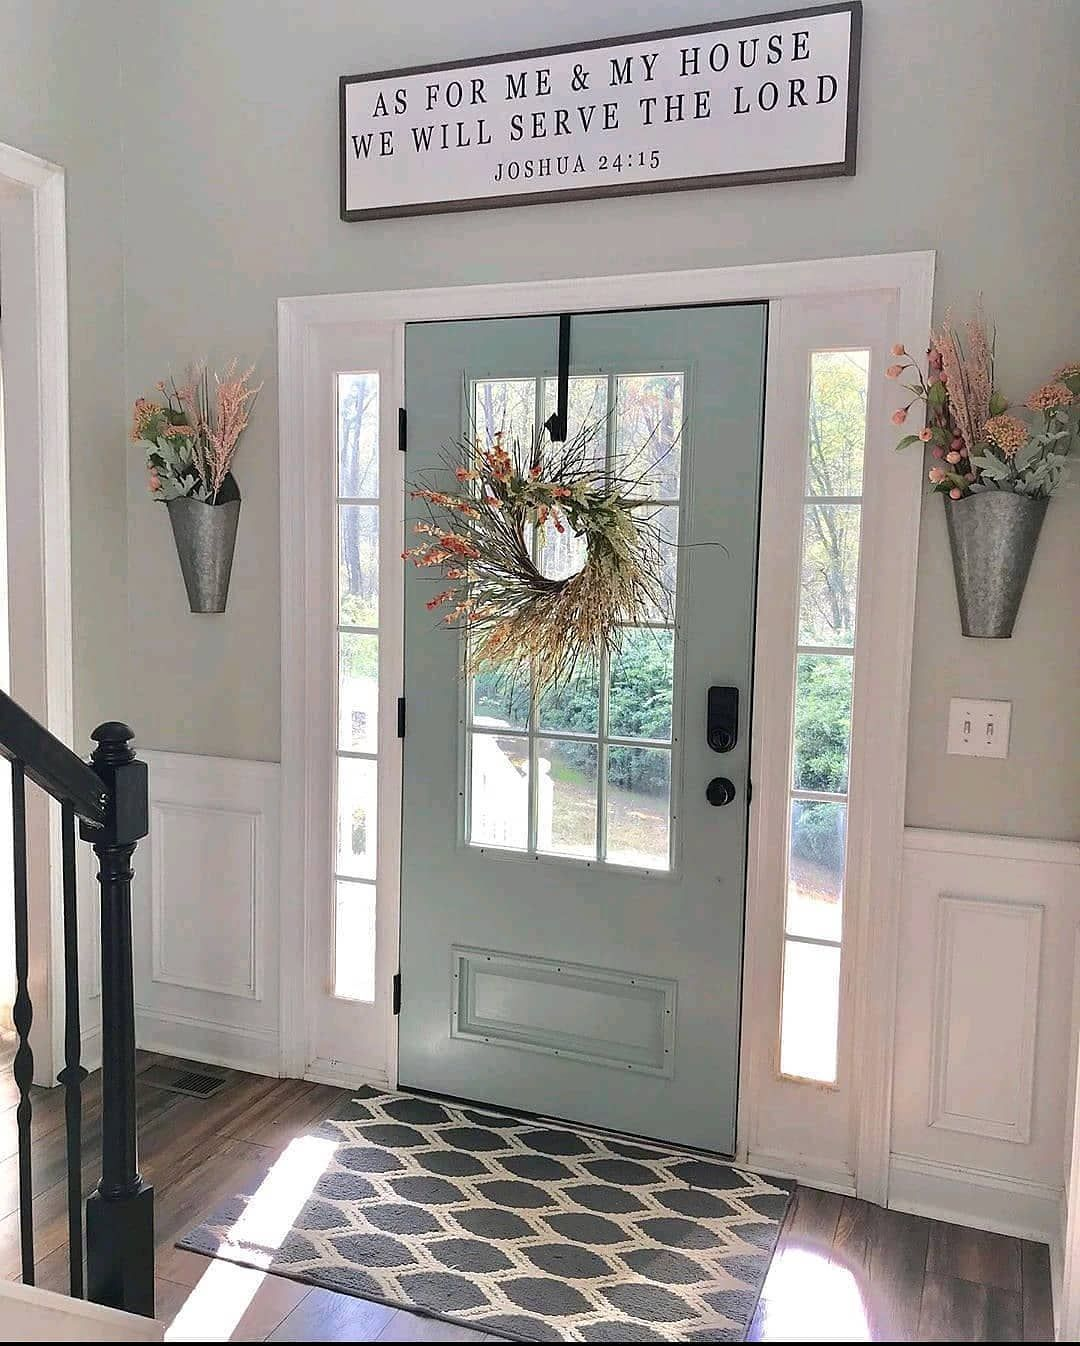 """Farmhouse Homes 🏡 on Instagram: """"This is entryway goals for sure! 😍 That front door is so dreamy and we love the light blue color! ❤️ What do you think? TAG a friend who…"""""""